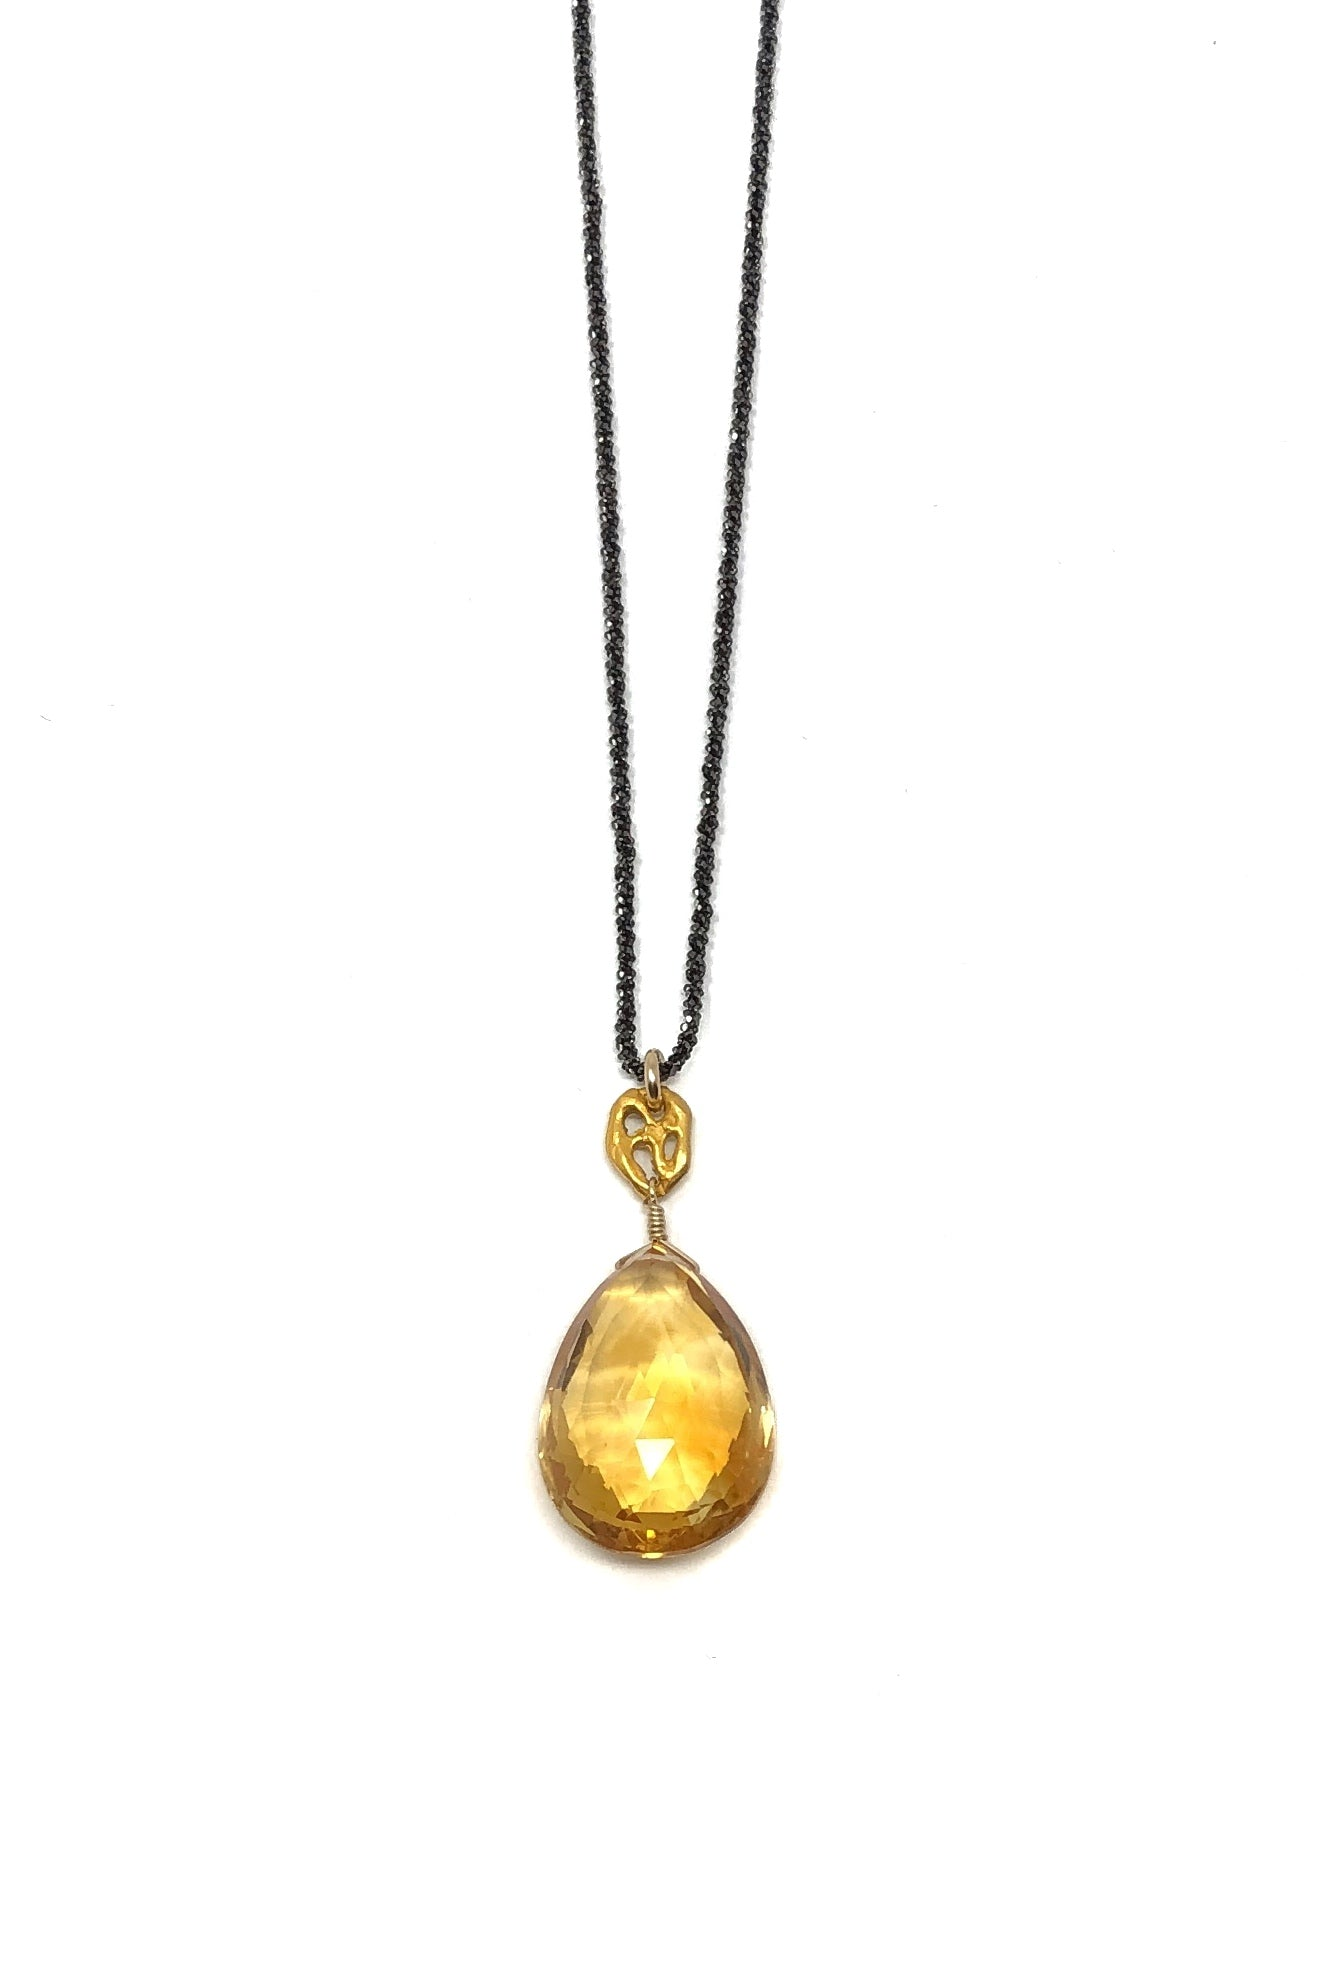 Gunmetal and Citrine Pendant Necklace